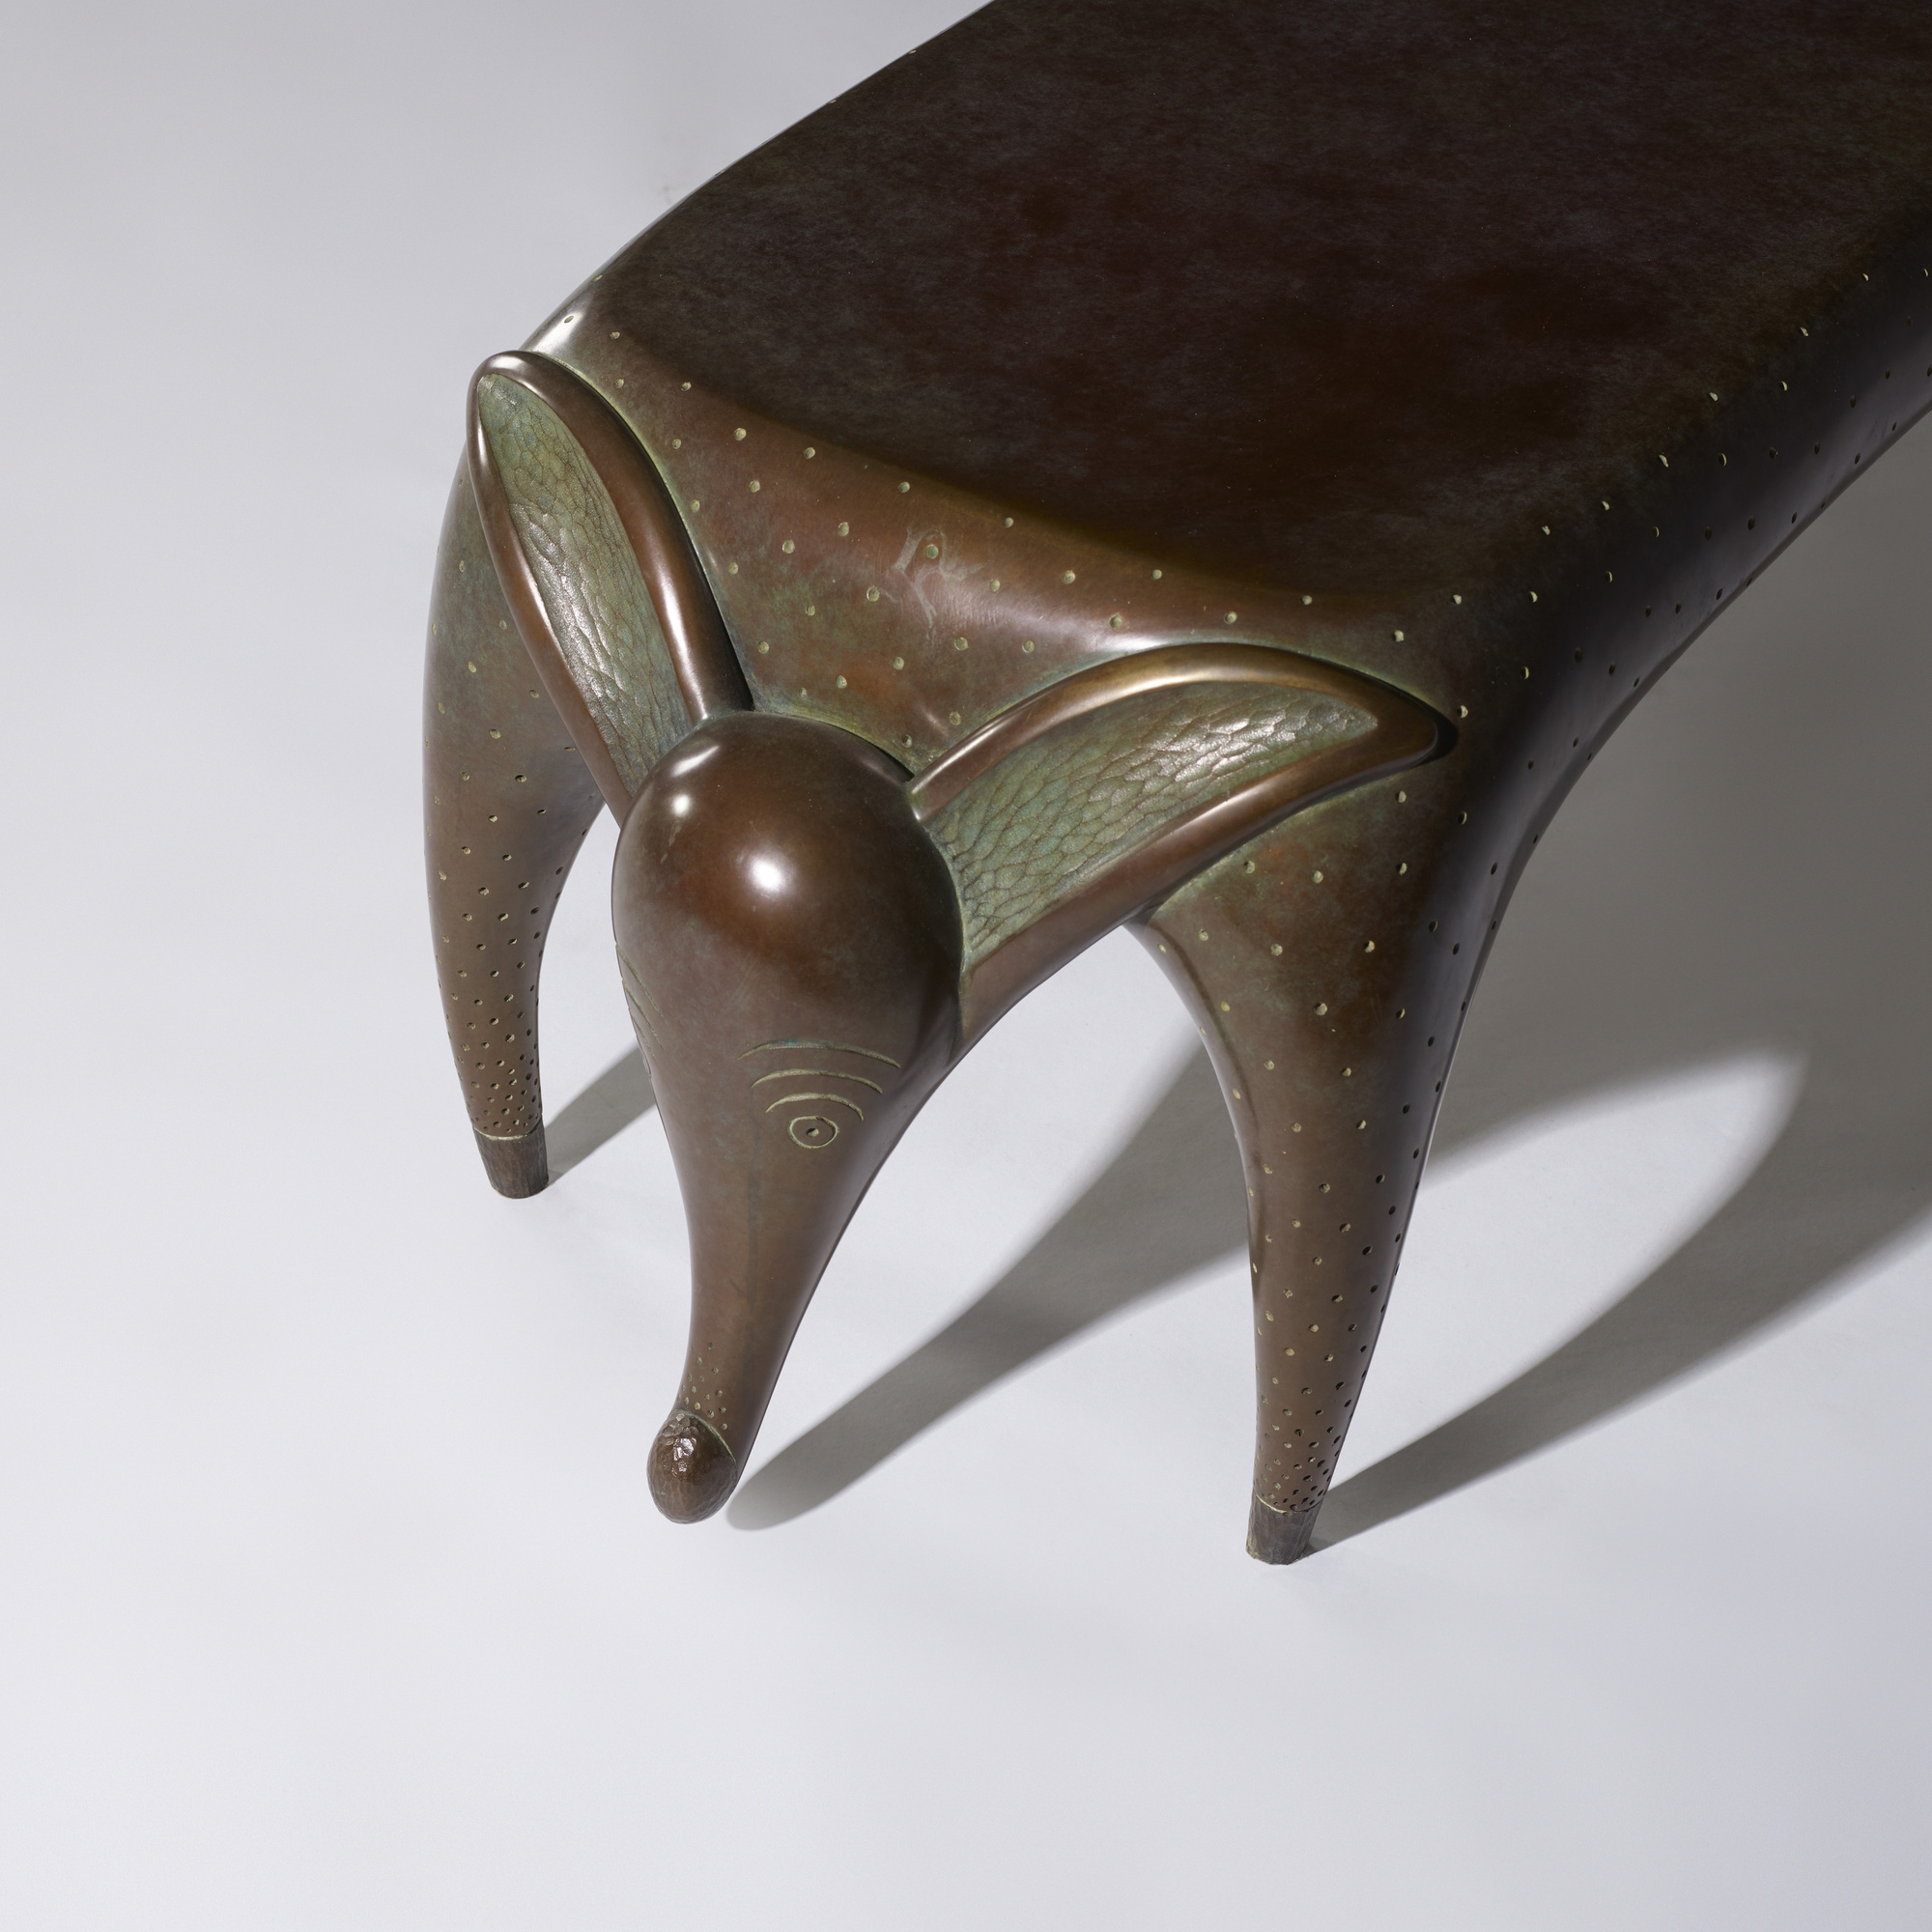 21: Judy Kensley McKie / Timid Dog bench (4 of 4)